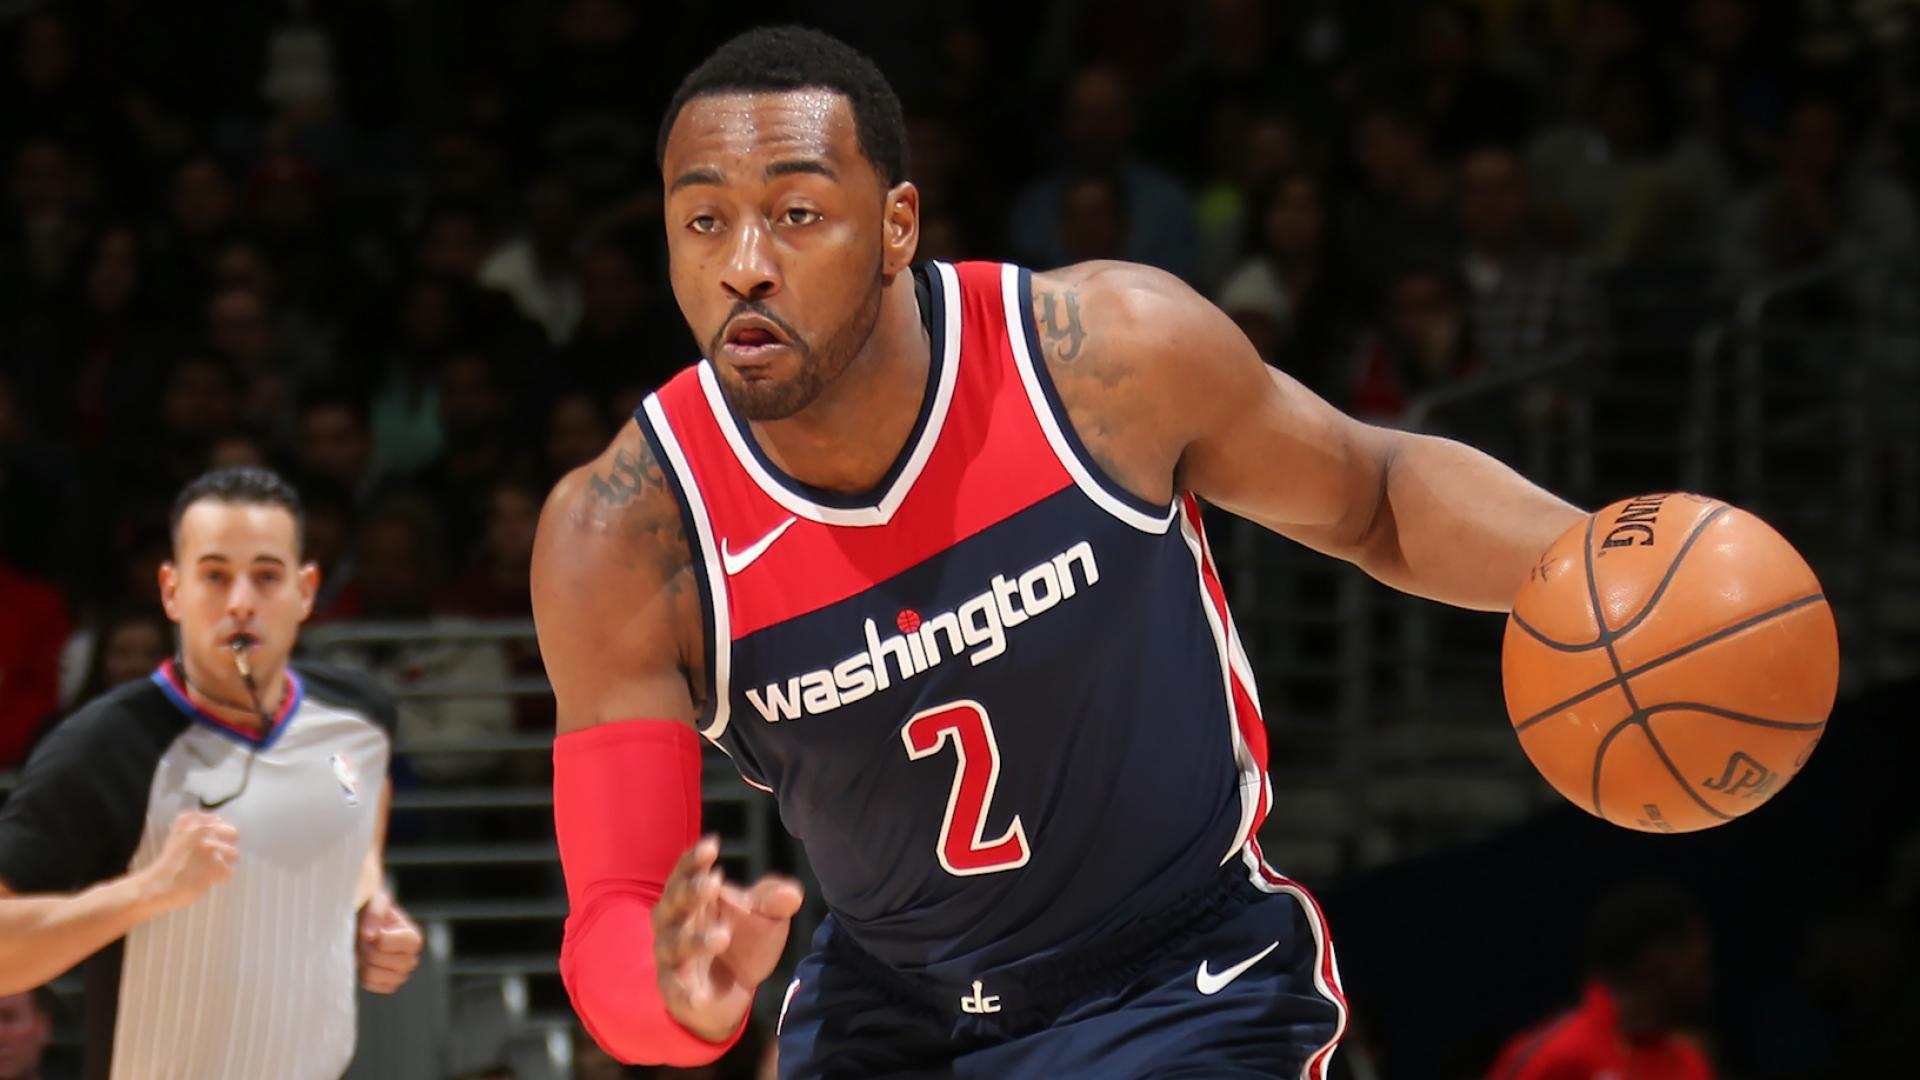 John Wall to undergo knee surgery on Wednesday